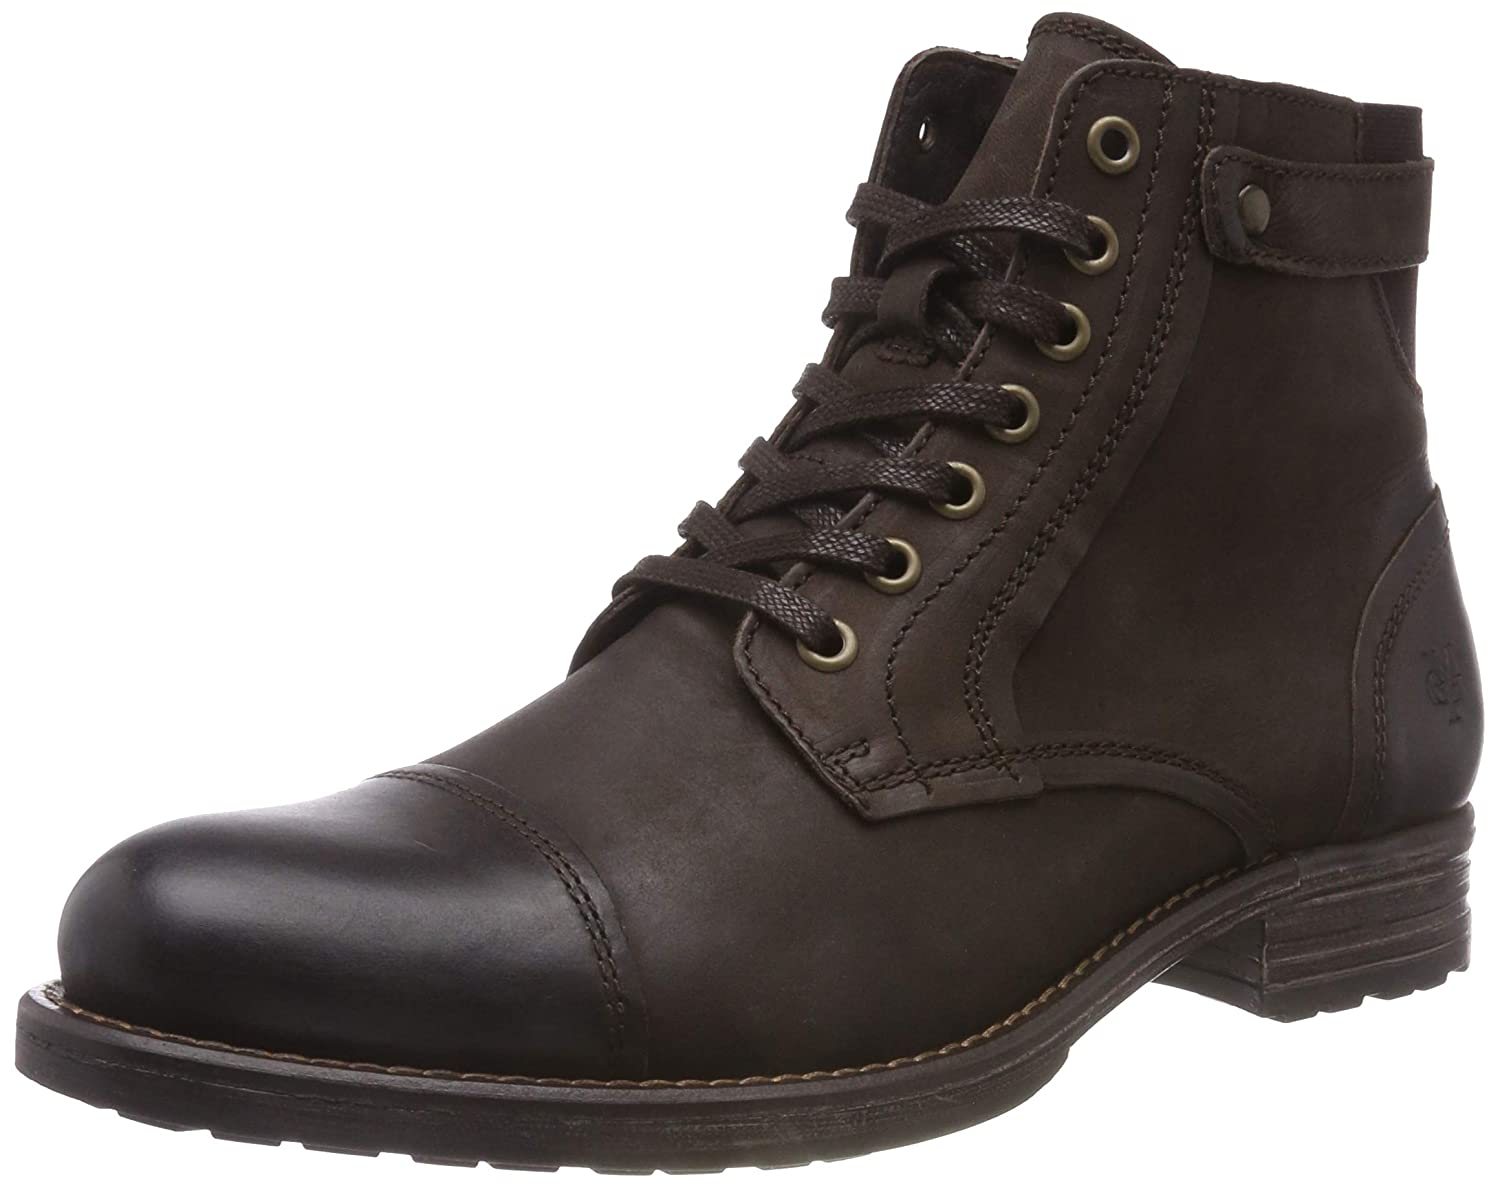 TALLA 43 EU. Marc O'Polo Lace Up Bootie - Botines Hombre